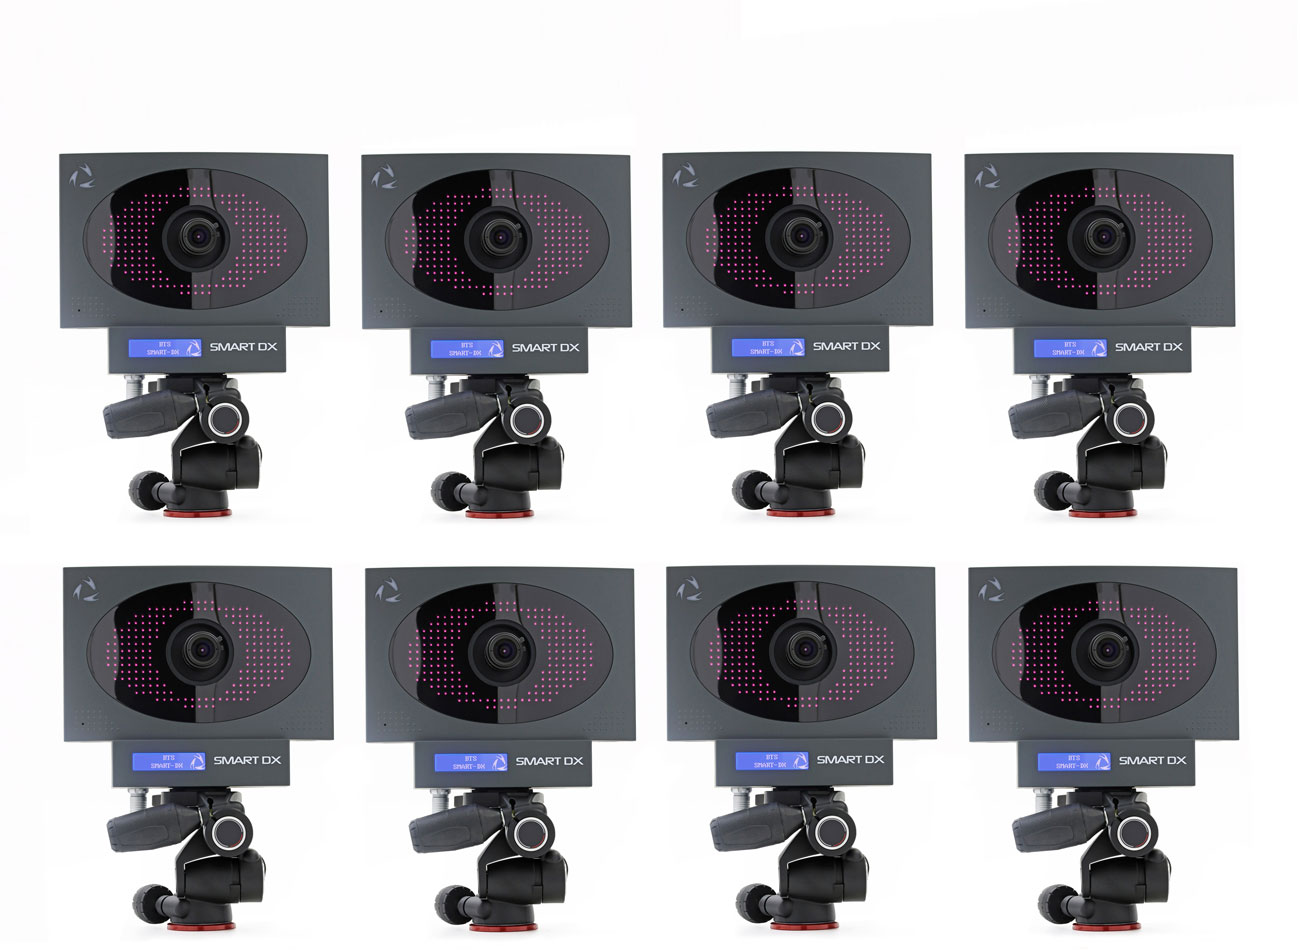 8 telecamere a infrarossi SMART-DX | BTS SPORTLAB componenti